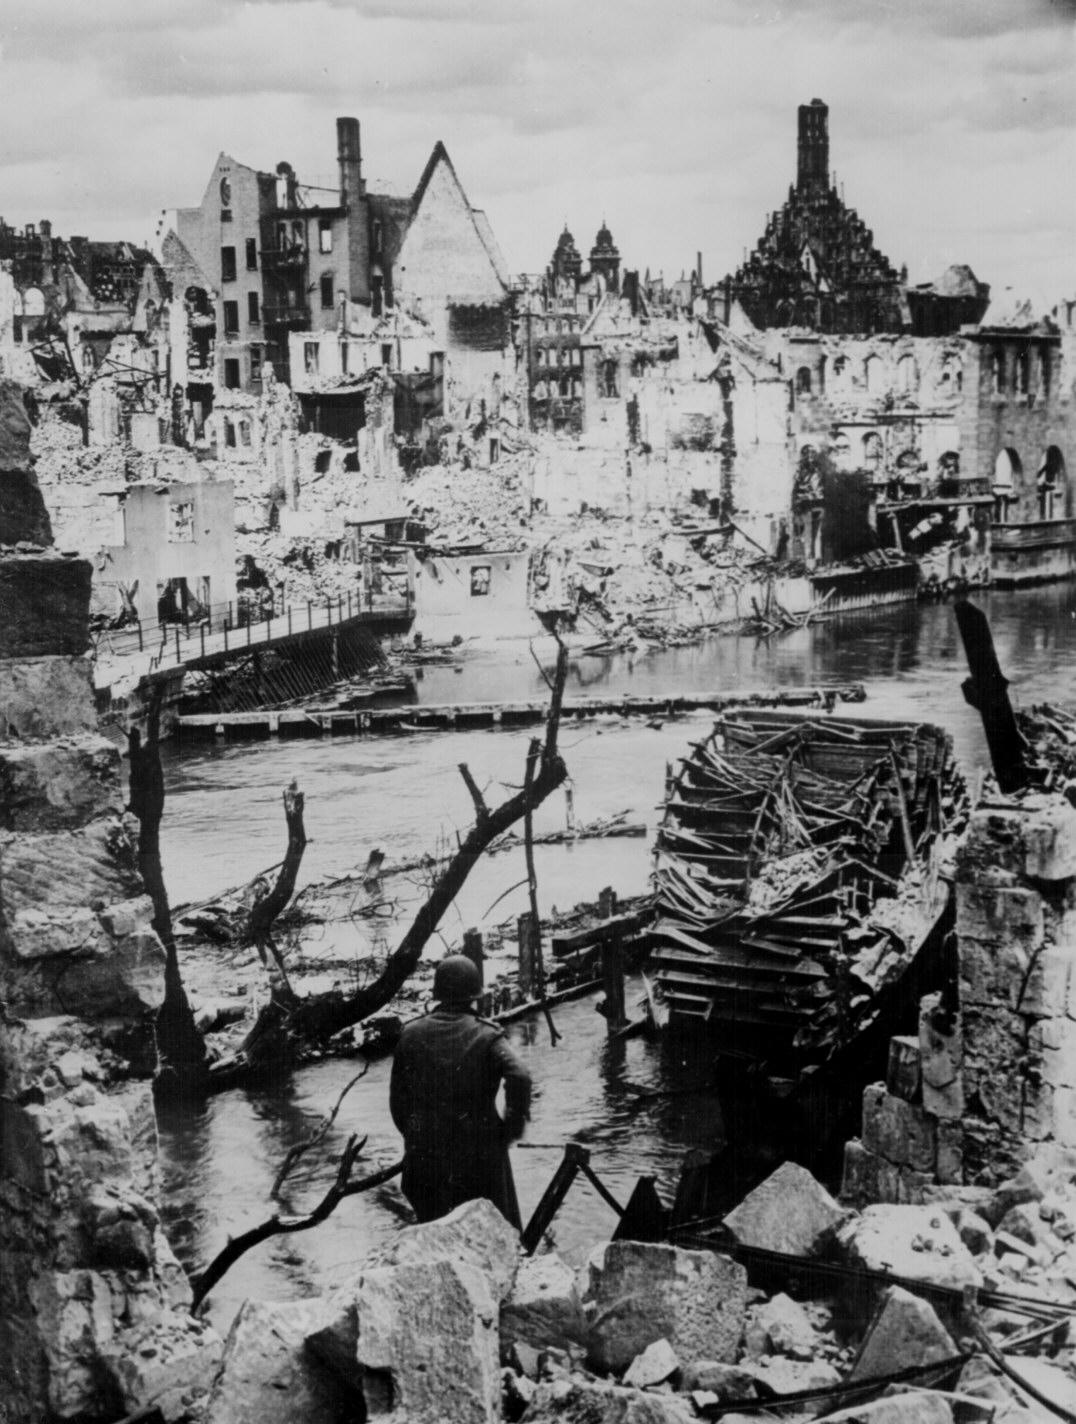 Liberated Nuremberg, Germany, in 1945